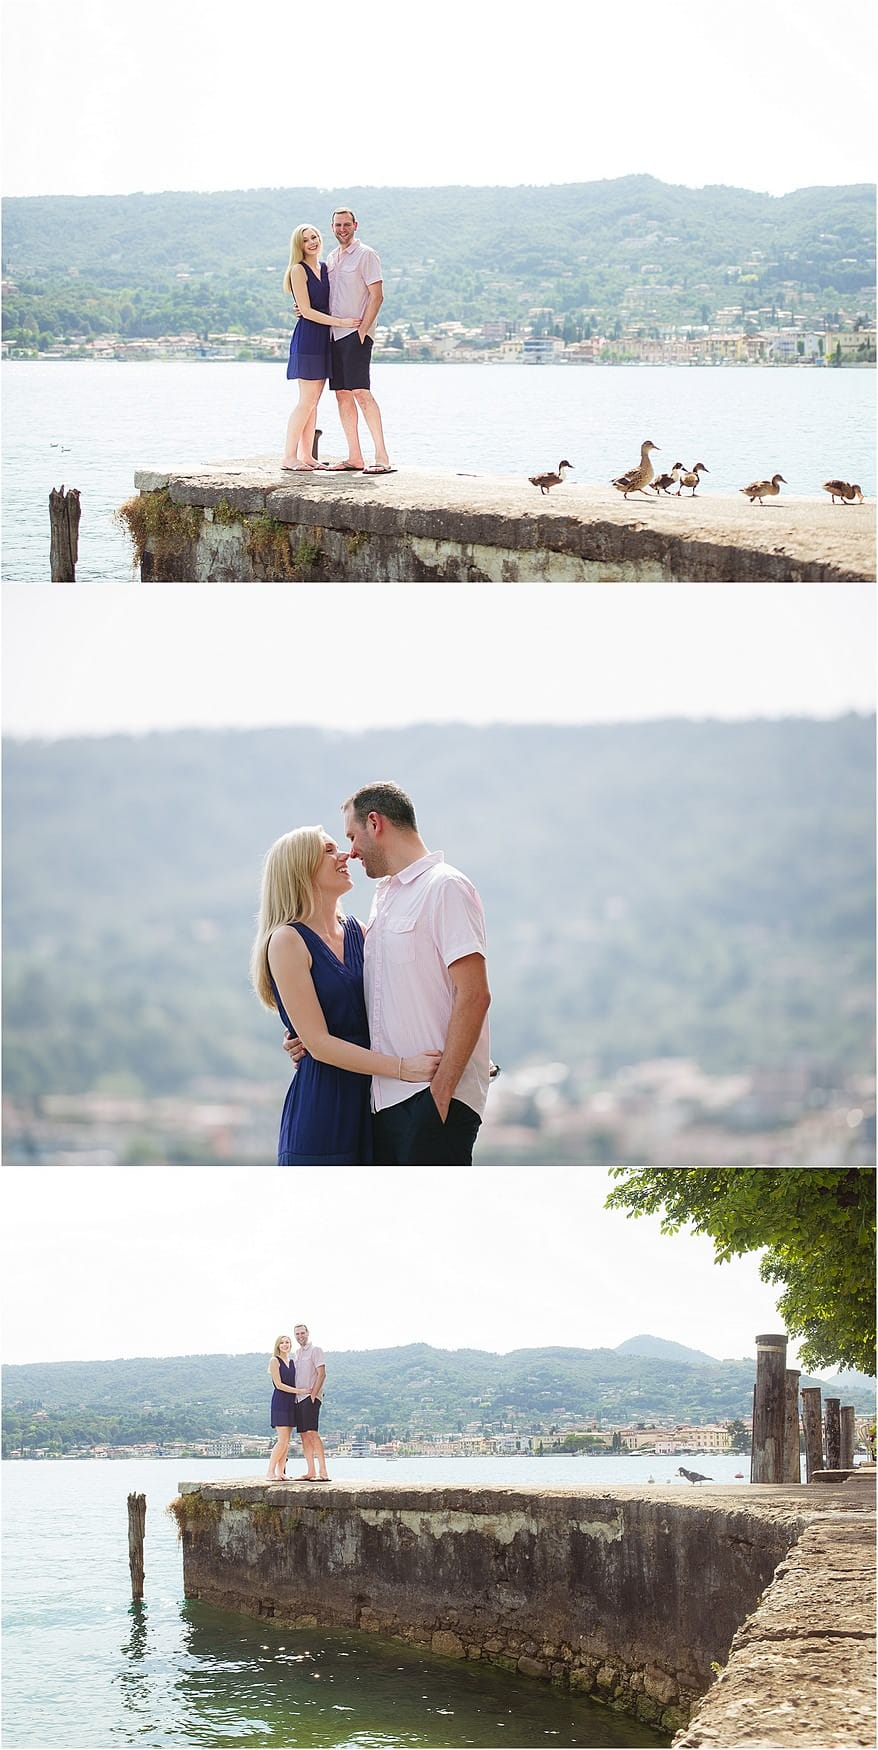 Engagement session in Lake Garda 6 Lake Garda wedding photographer